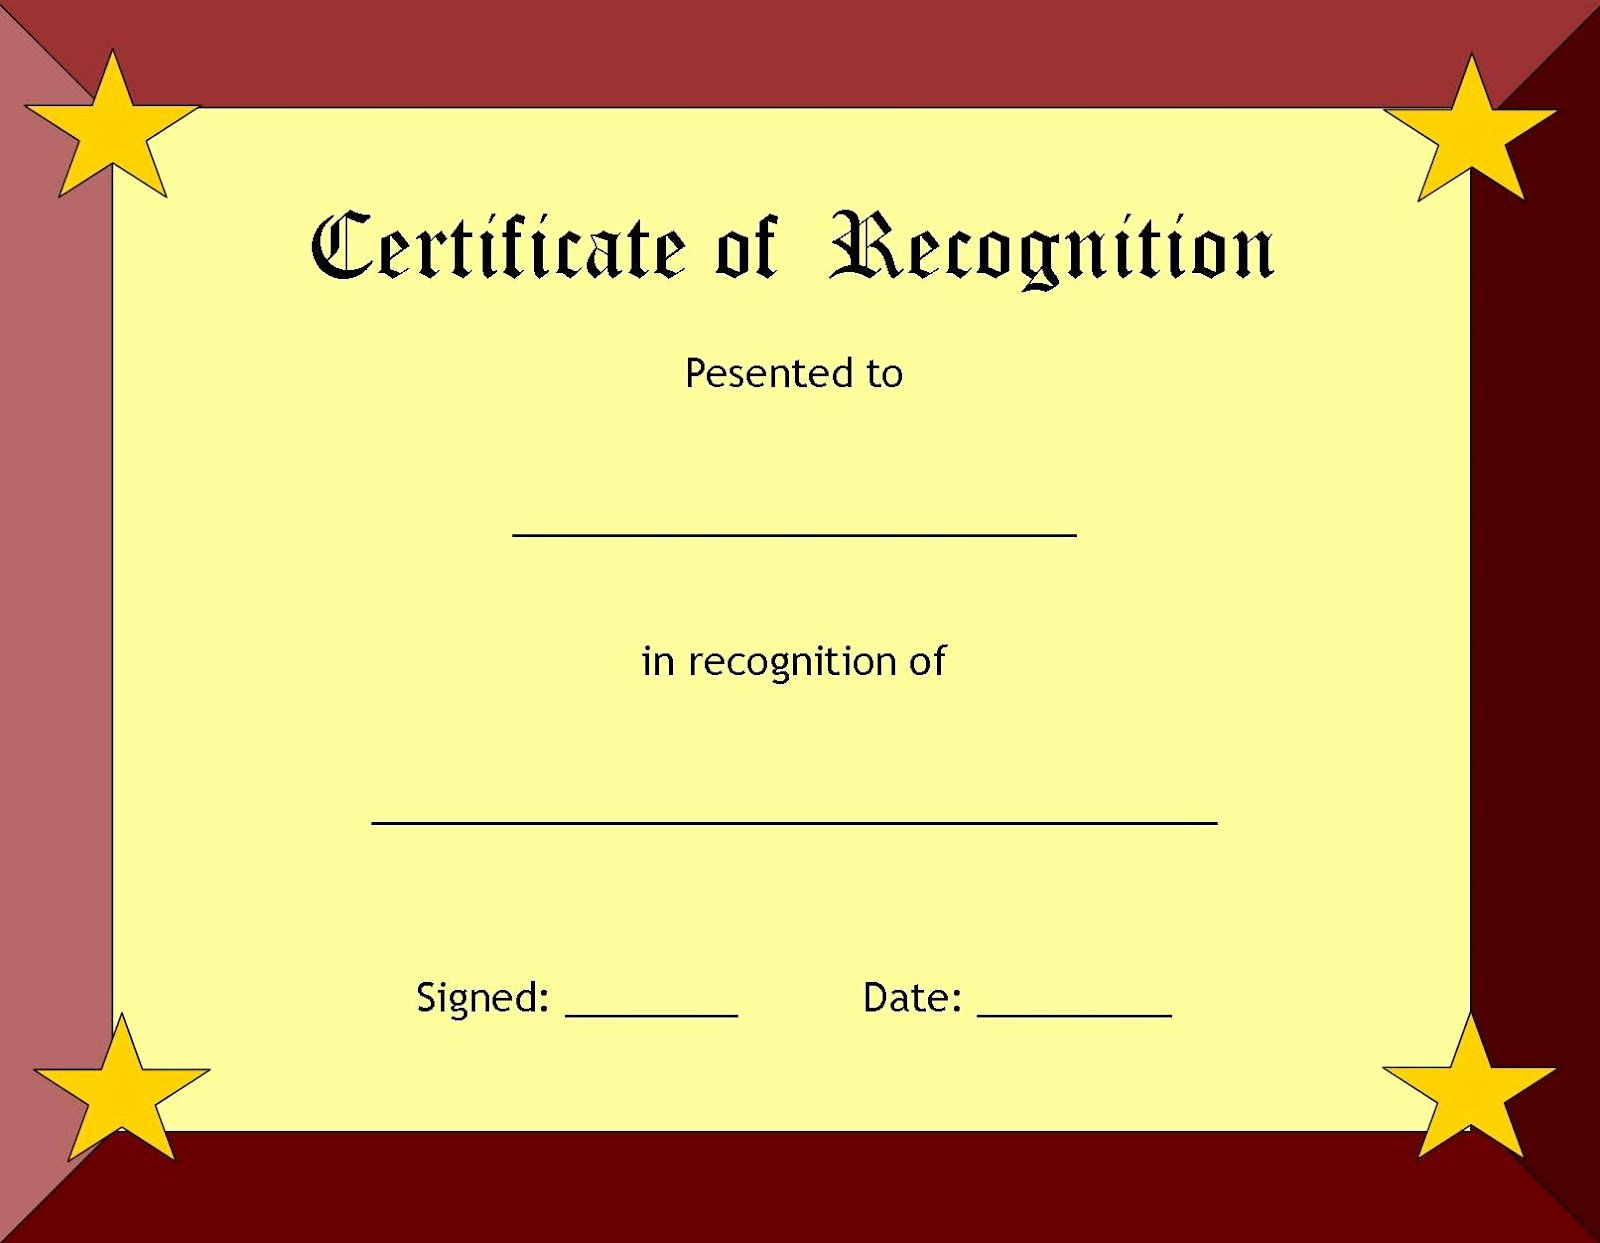 Scholarship Certificate Template Free Lovely A Collection Of Free Certificate Borders and Templates